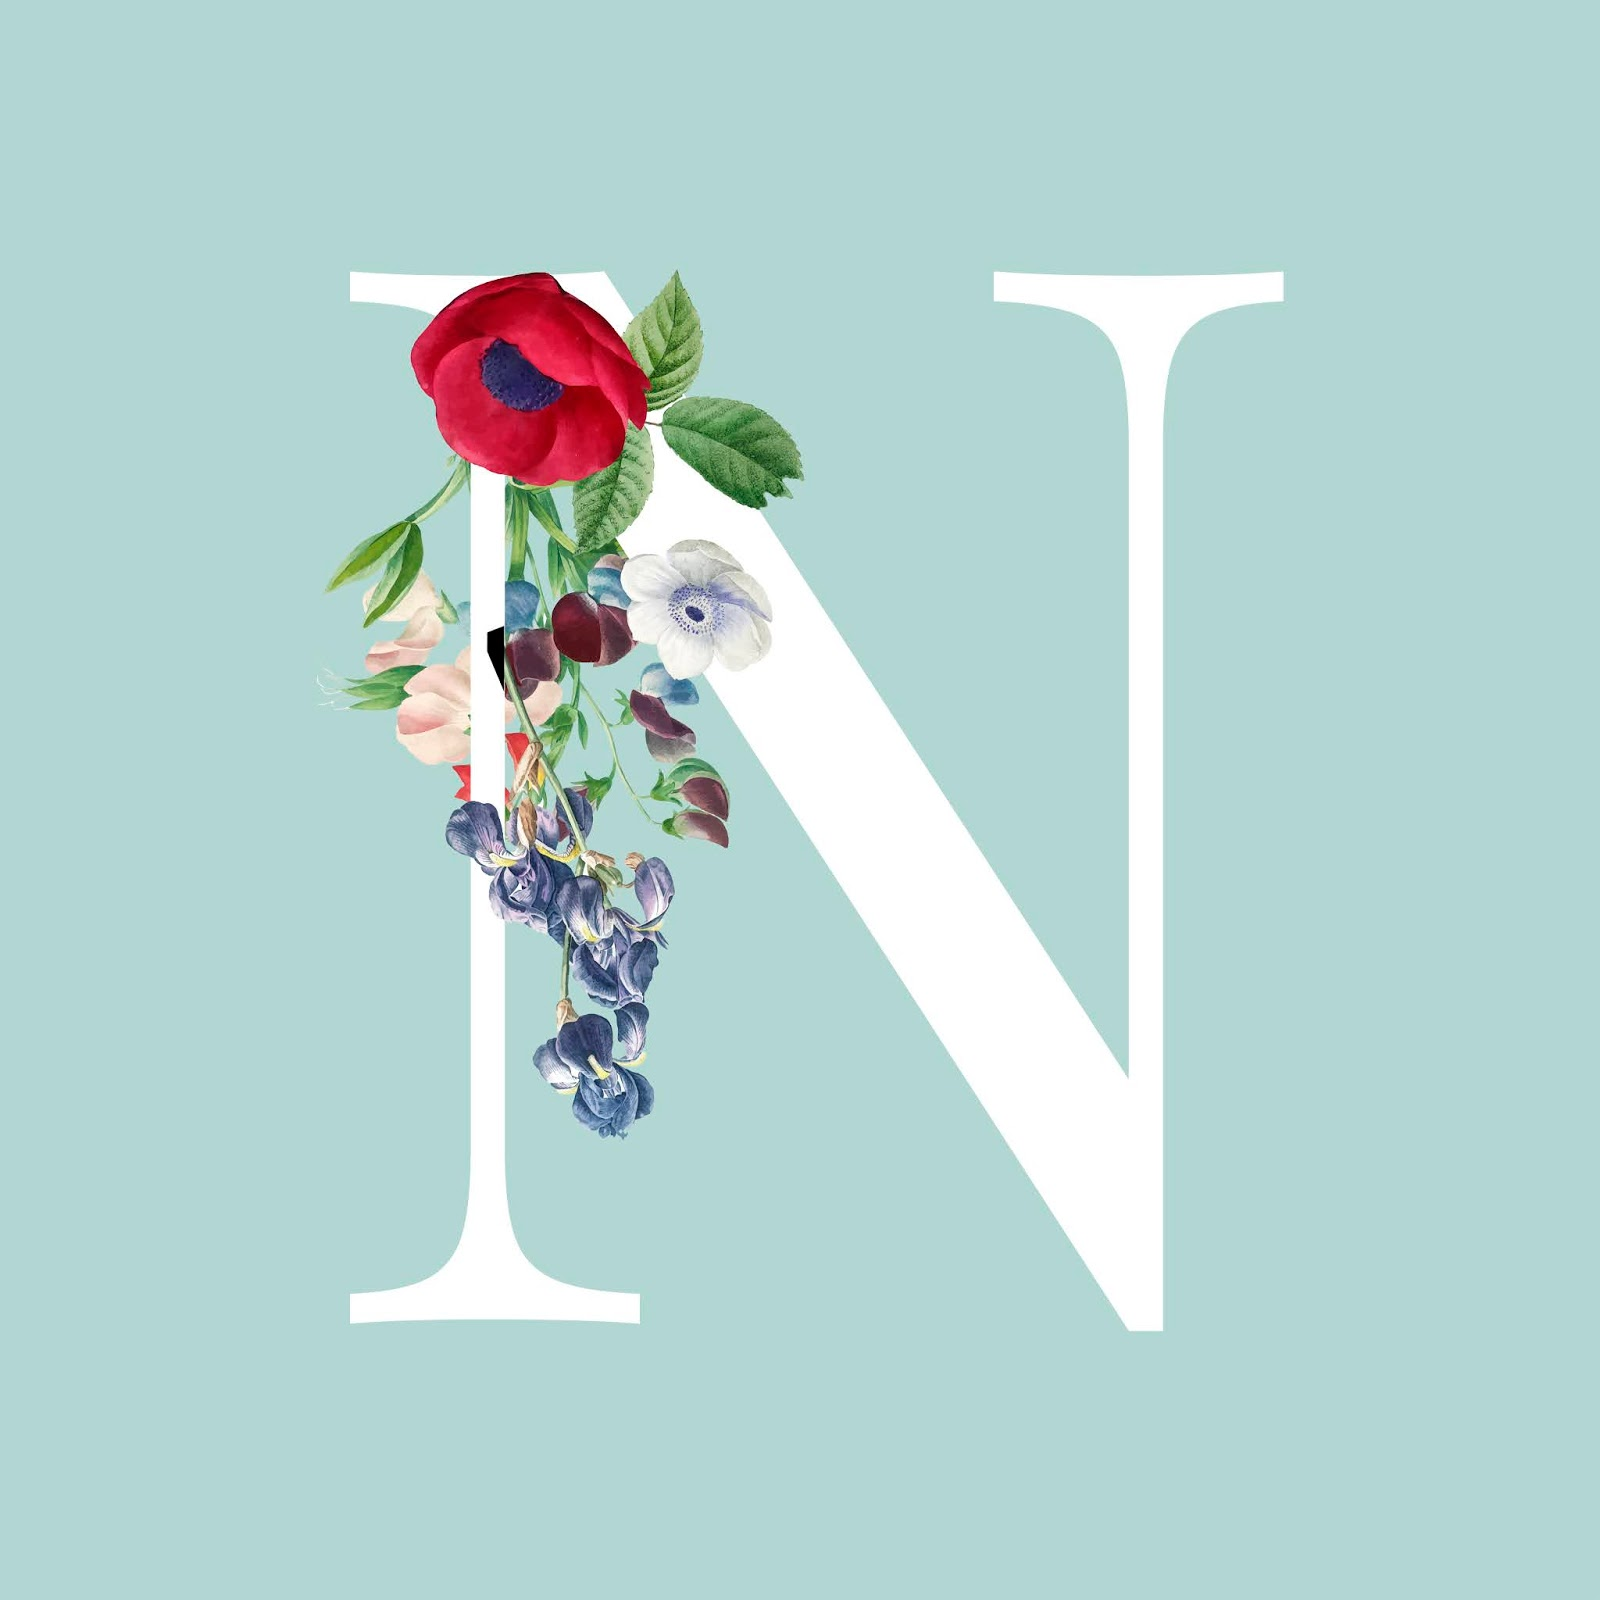 Floral Capital Letter N Alphabet Vector Free Download Vector CDR, AI, EPS and PNG Formats